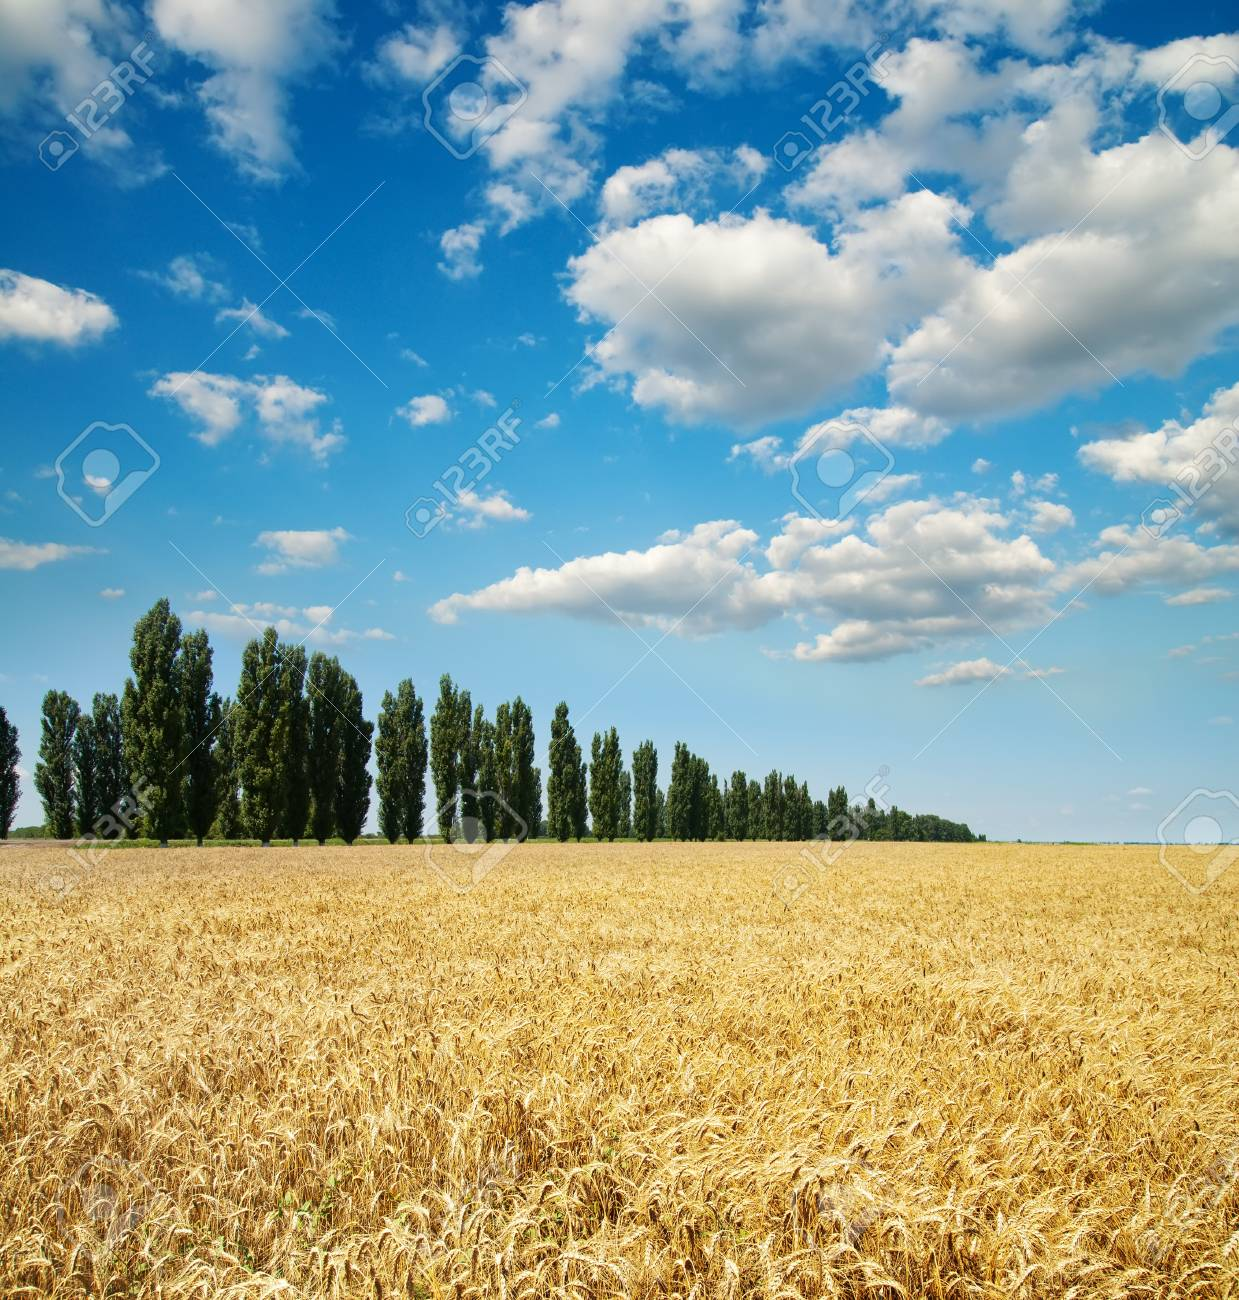 gold ears of wheat with trees under sky Stock Photo - 8949189